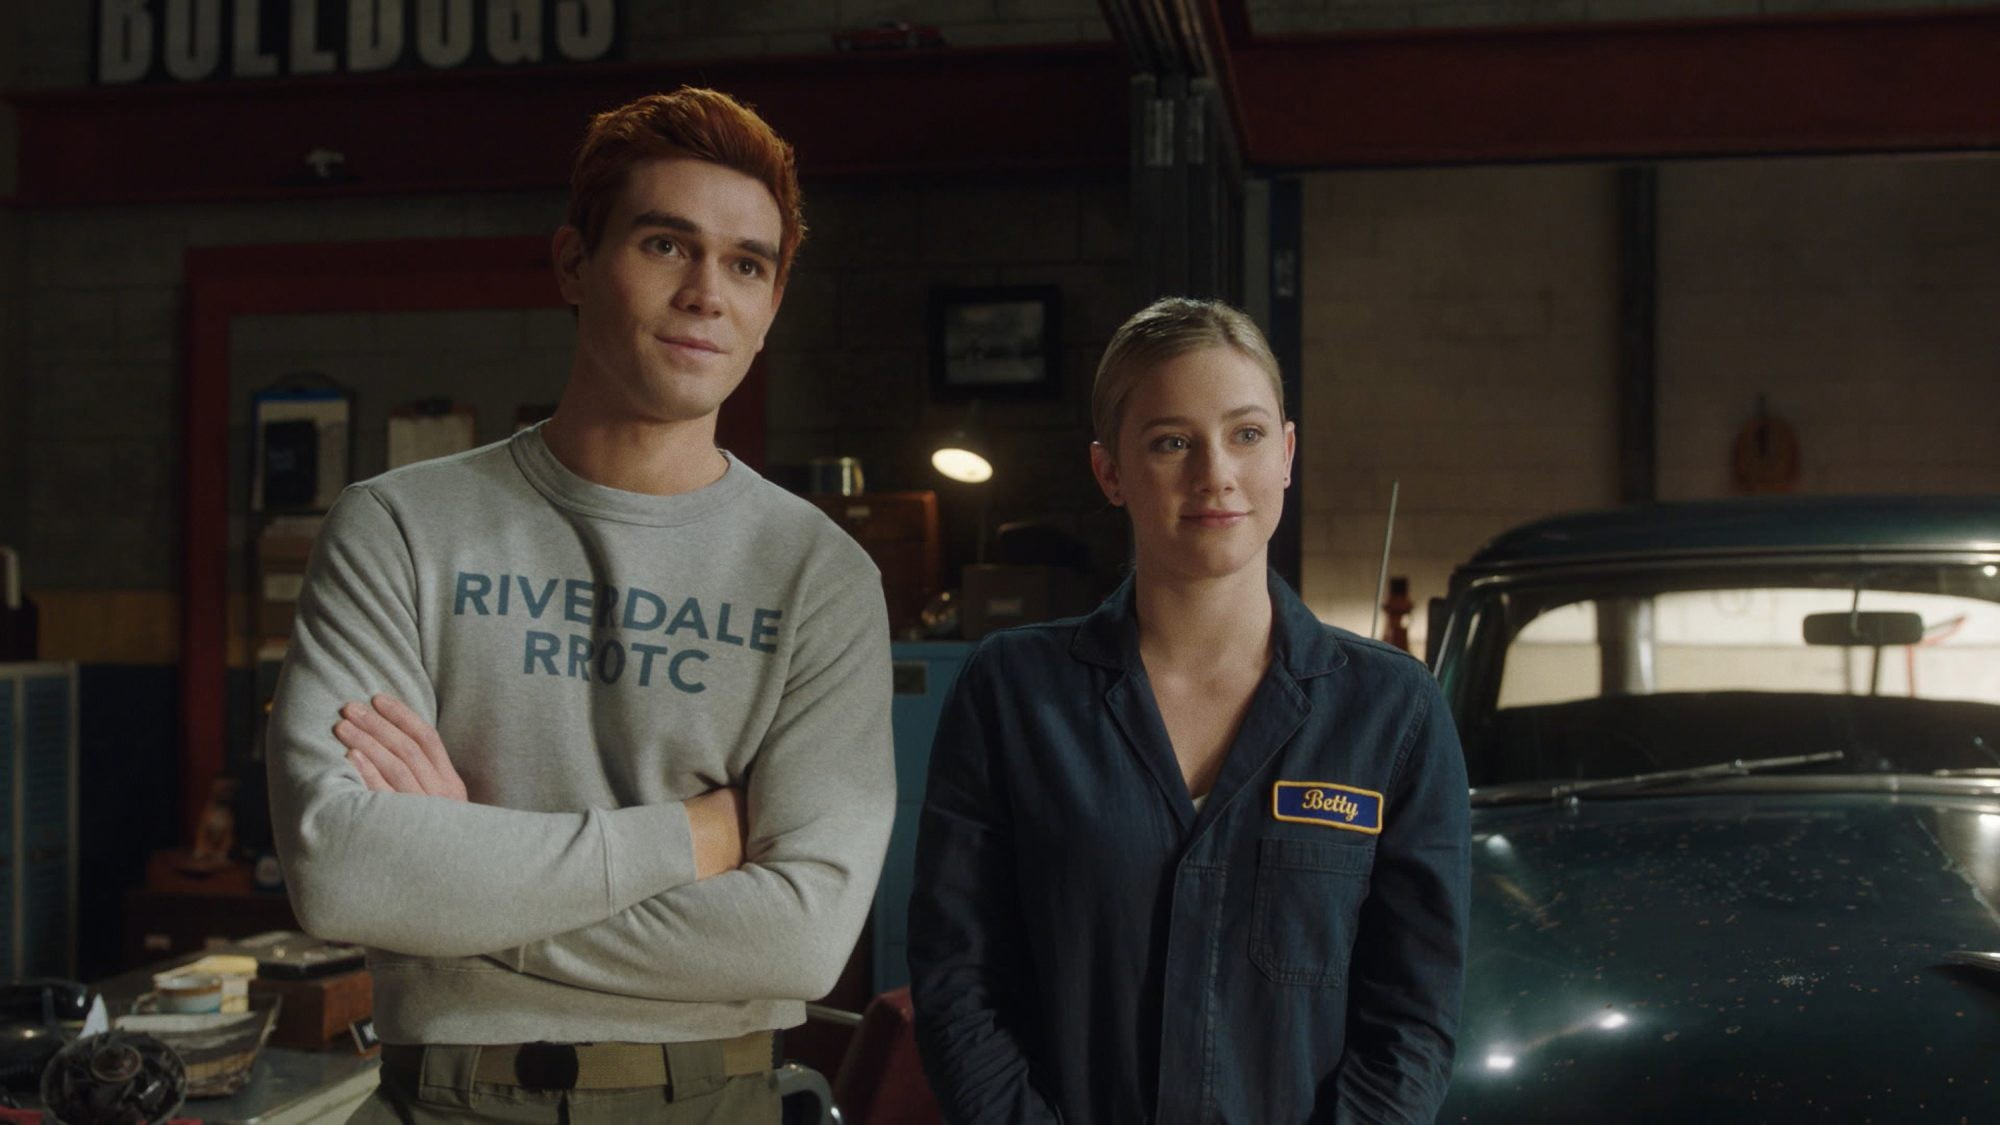 RIVERDALE, from left: KJ Apa, Lili Reinhart, Chapter Eighty-Two: Back To School', (Season 5, Episode 506, aired Feb. 24, 2021). photo: The CW Network / Courtesy Everett Collection